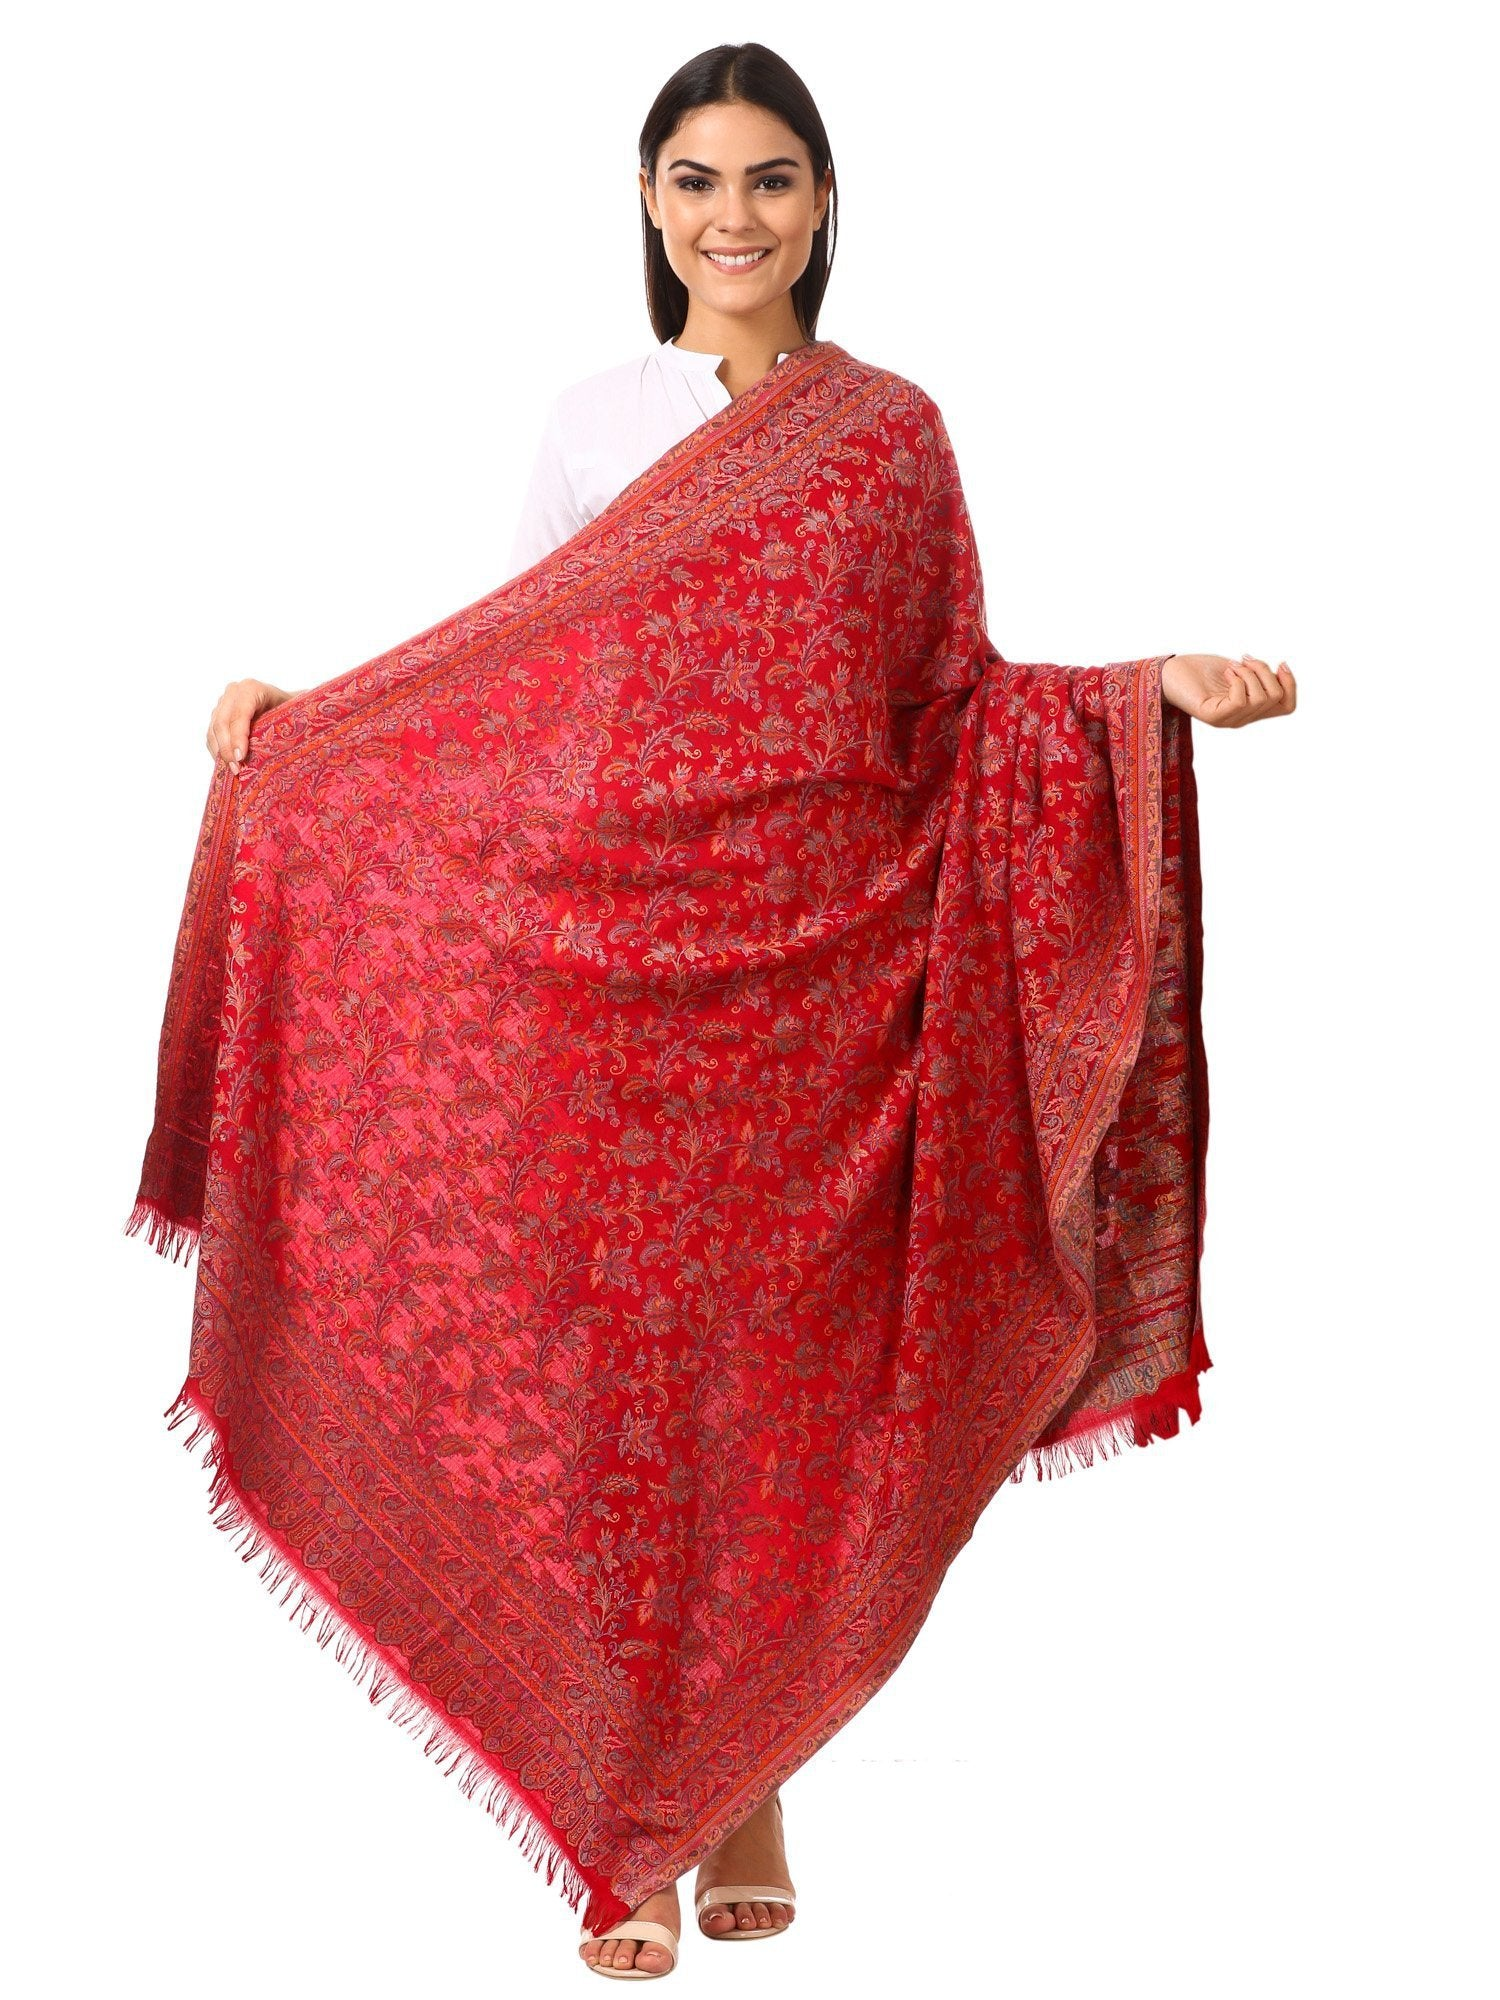 Womens Kaani Shawl, Faux Pashmina, Soft and Warm (Scarlet Red)